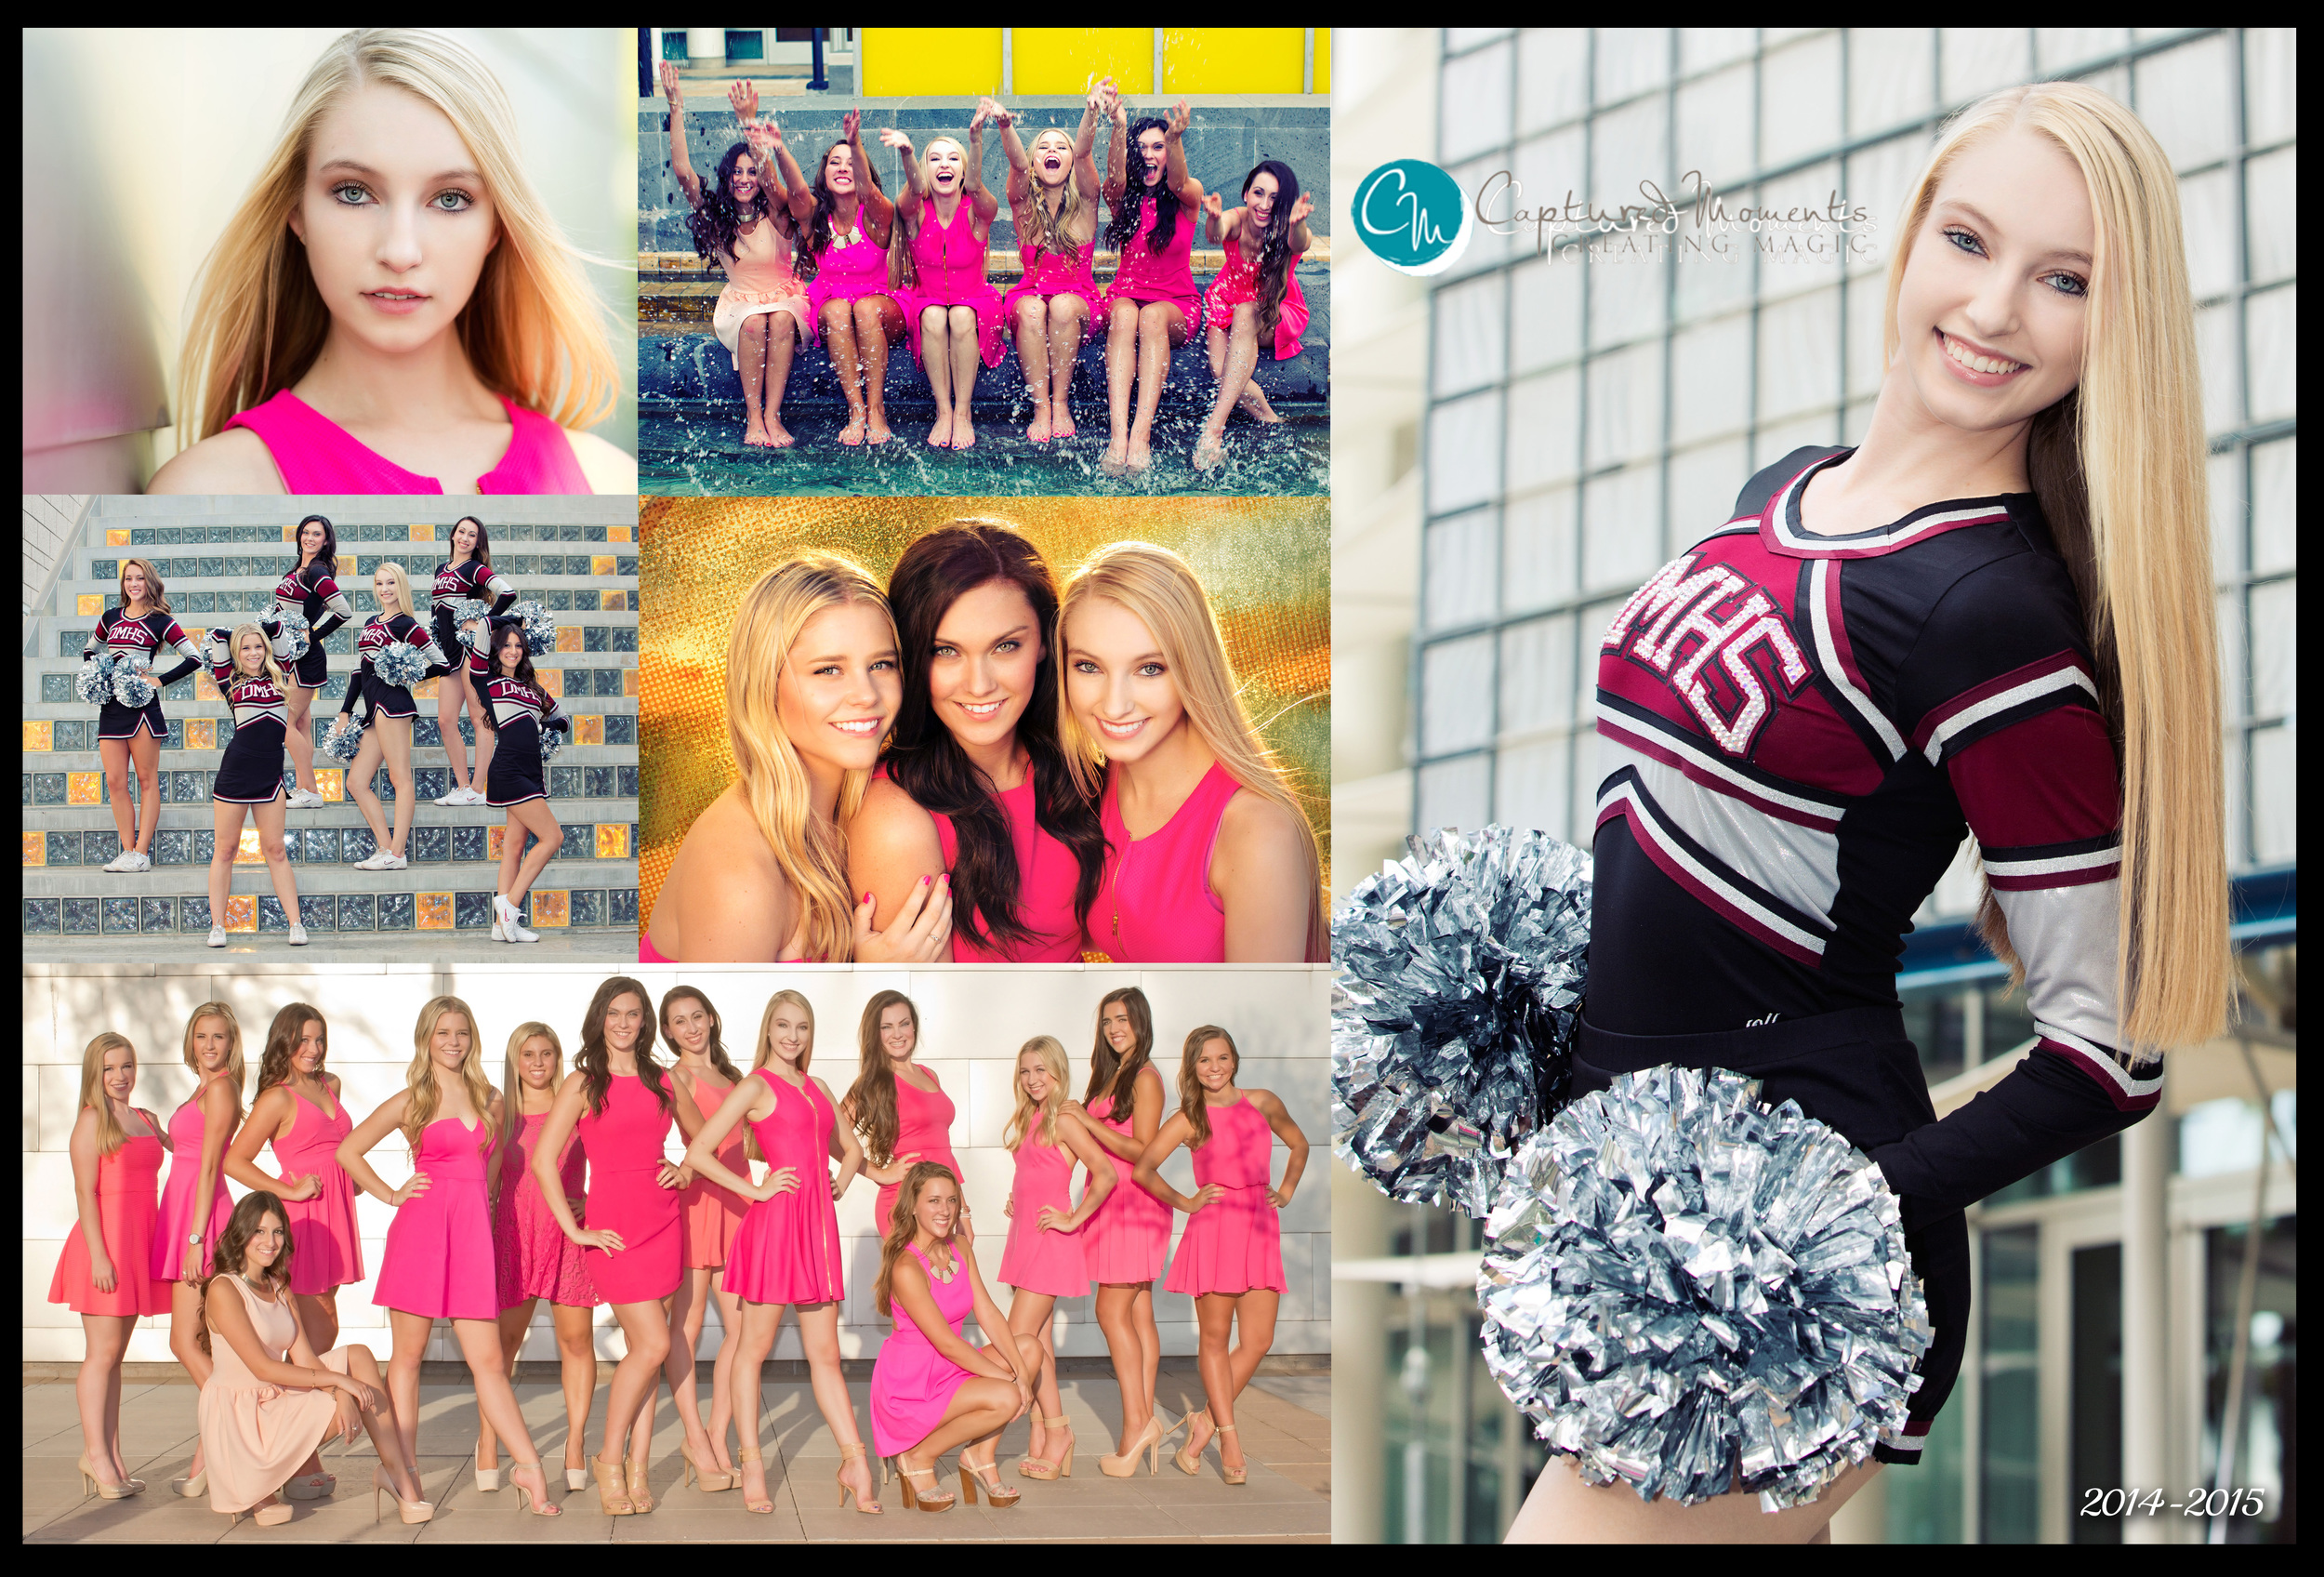 Harrison pom collage